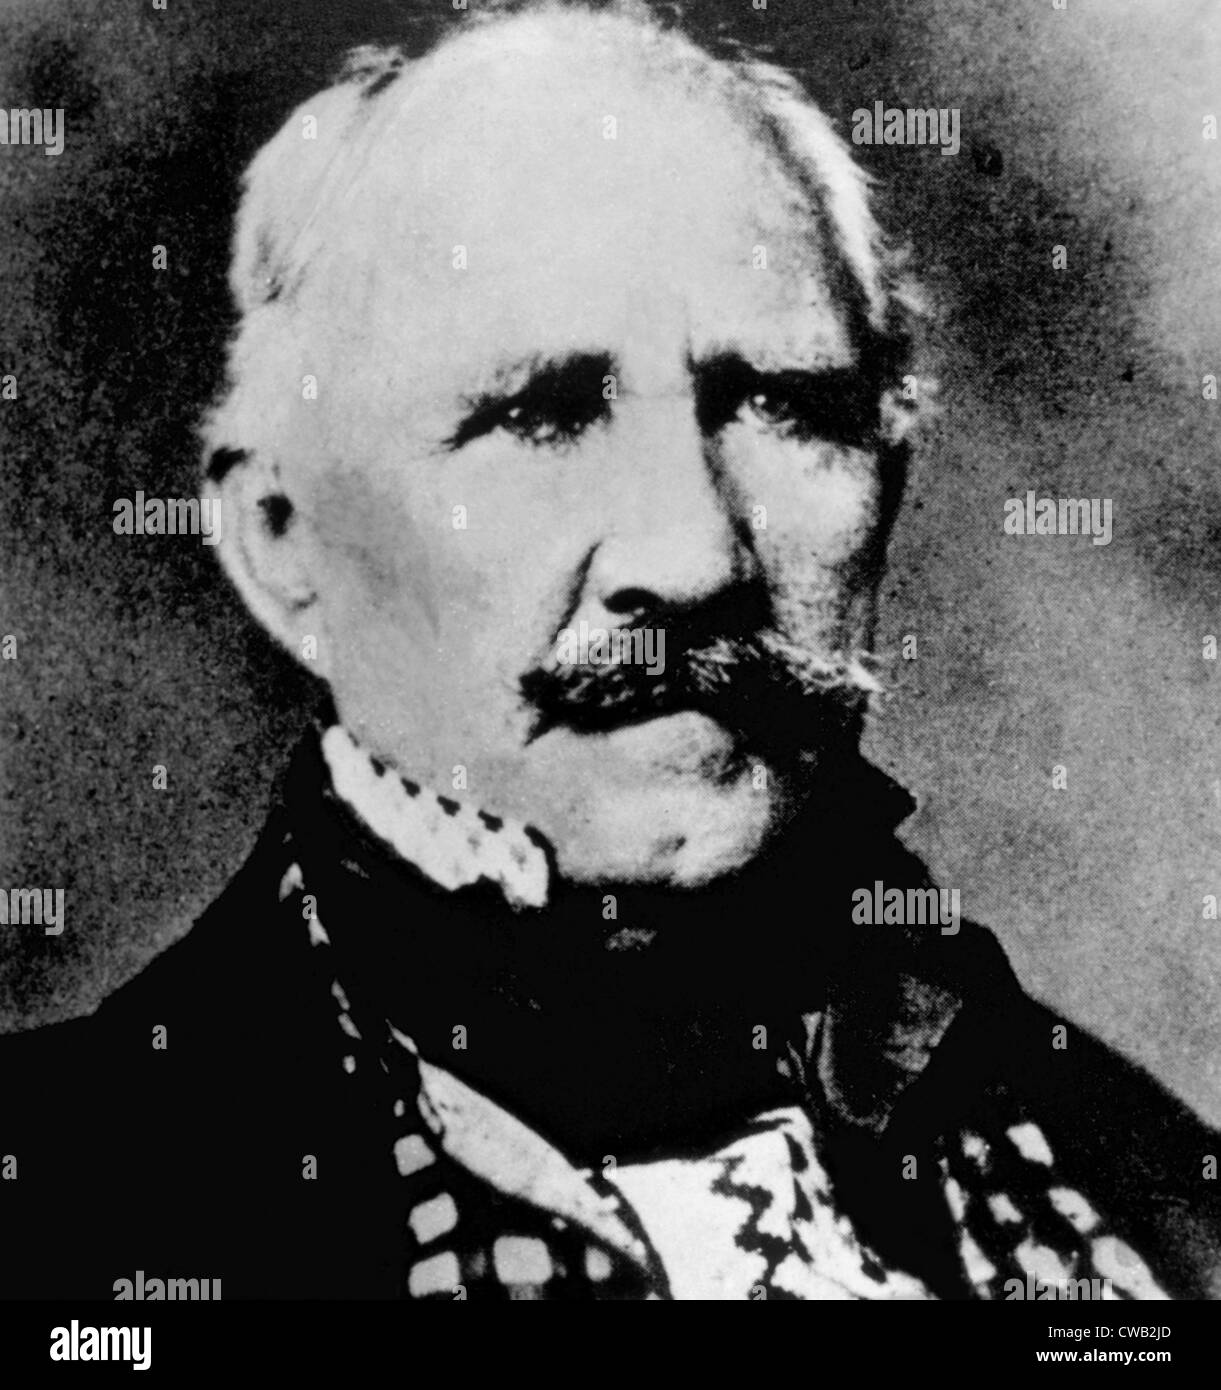 Le général Sam Houston (1793-1863), photo de Mathew Brady Photo Stock